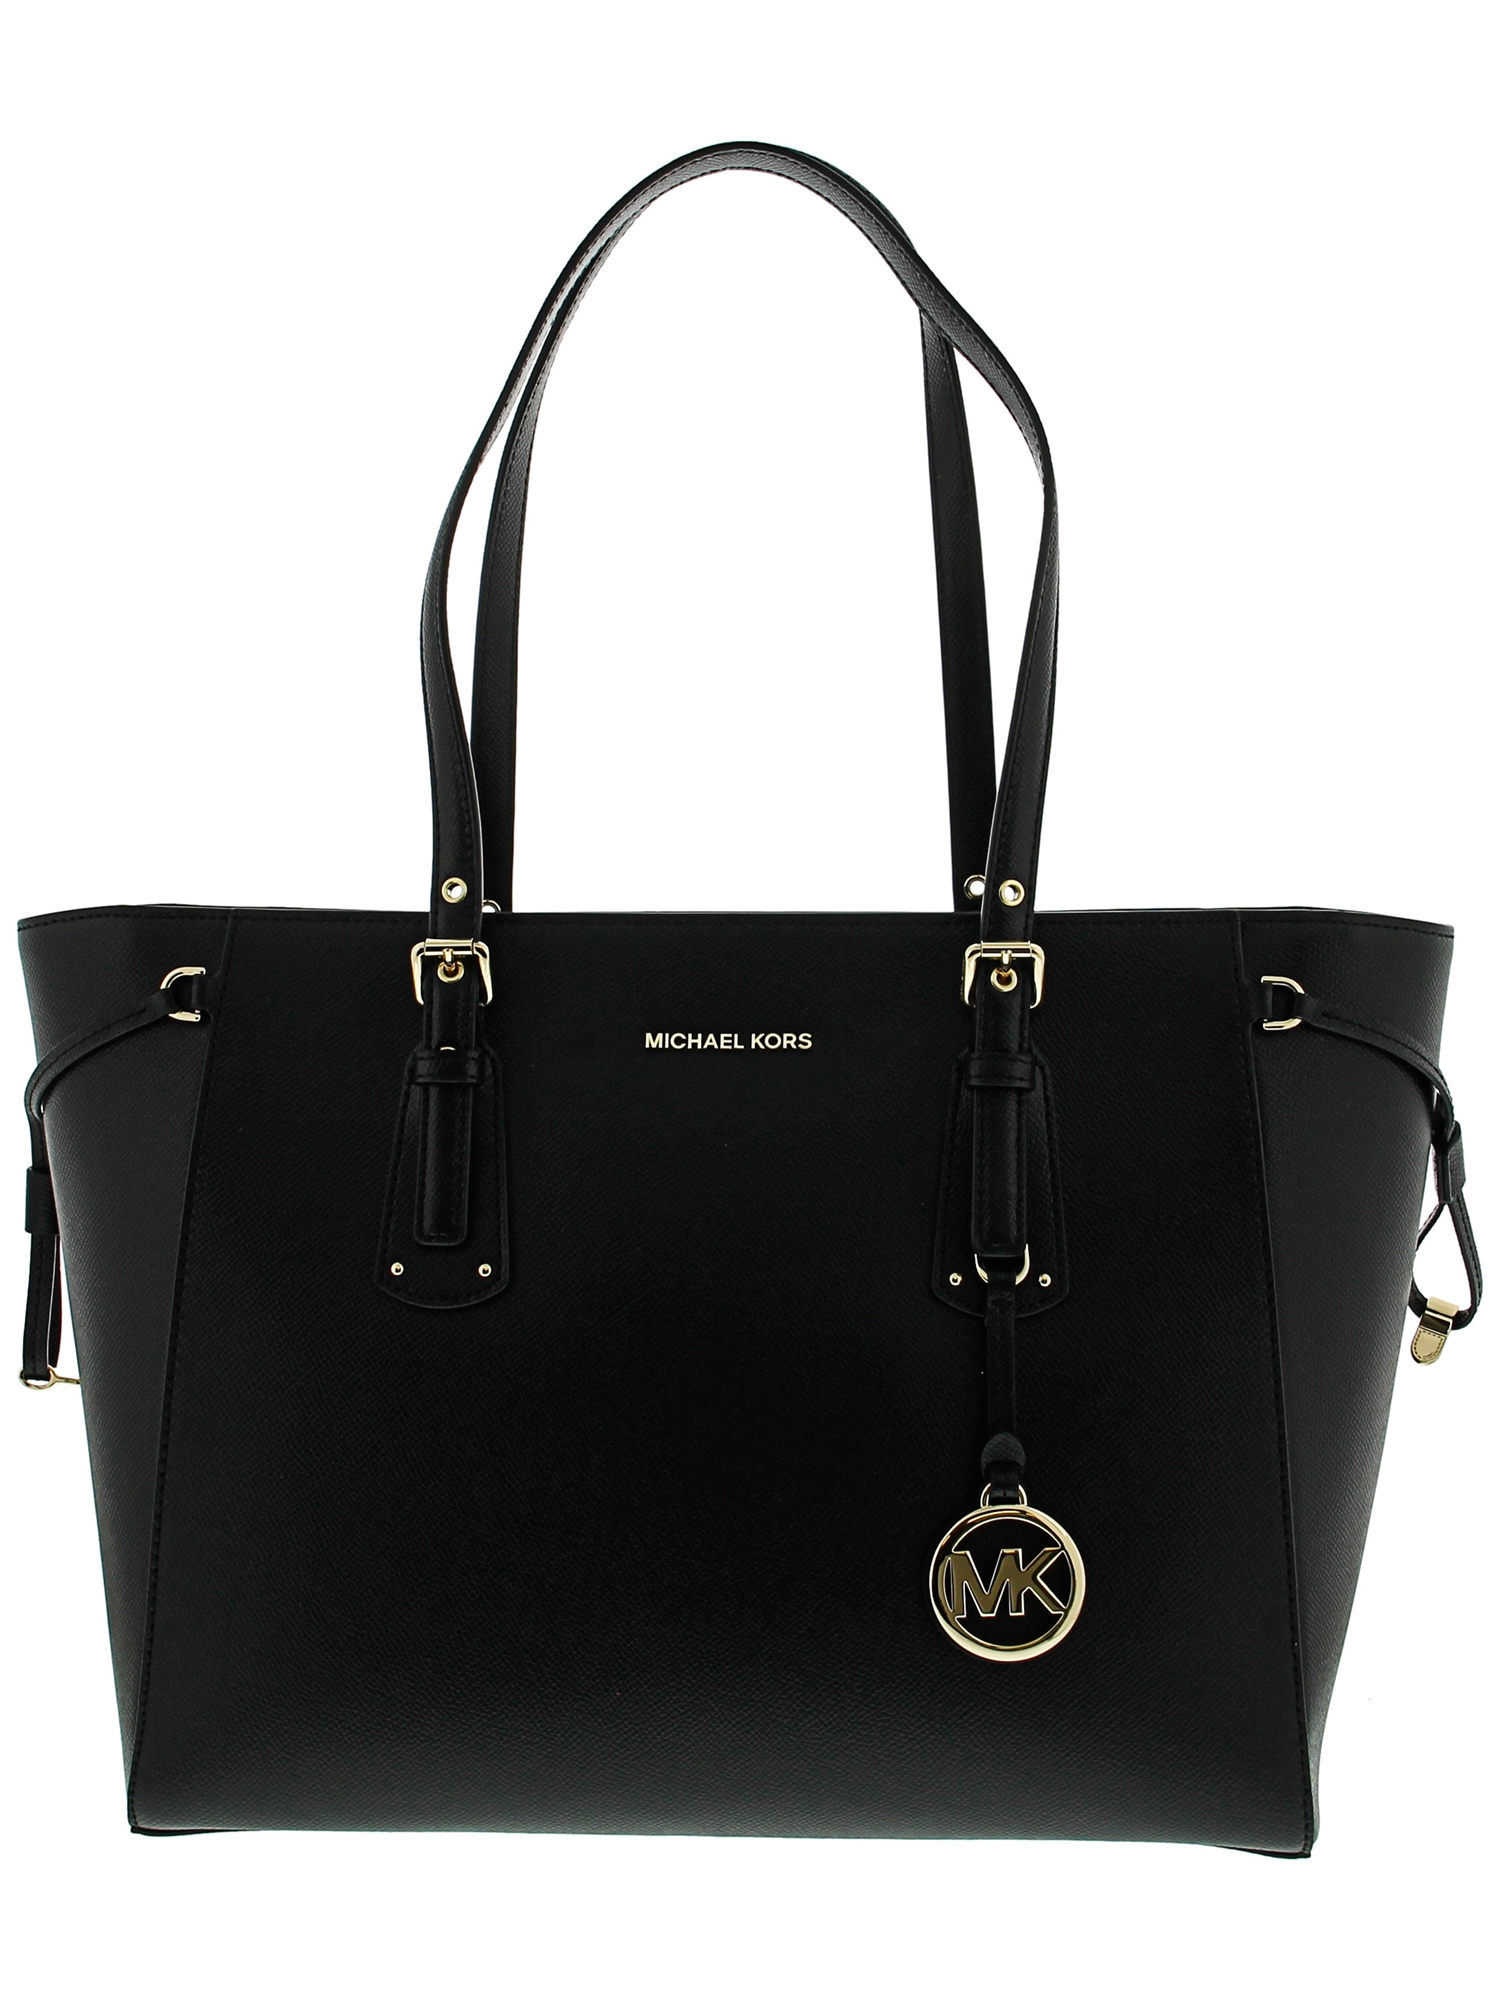 Michael Kors Women's Medium Voyager Leather Top-Handle Bag Tote - Black